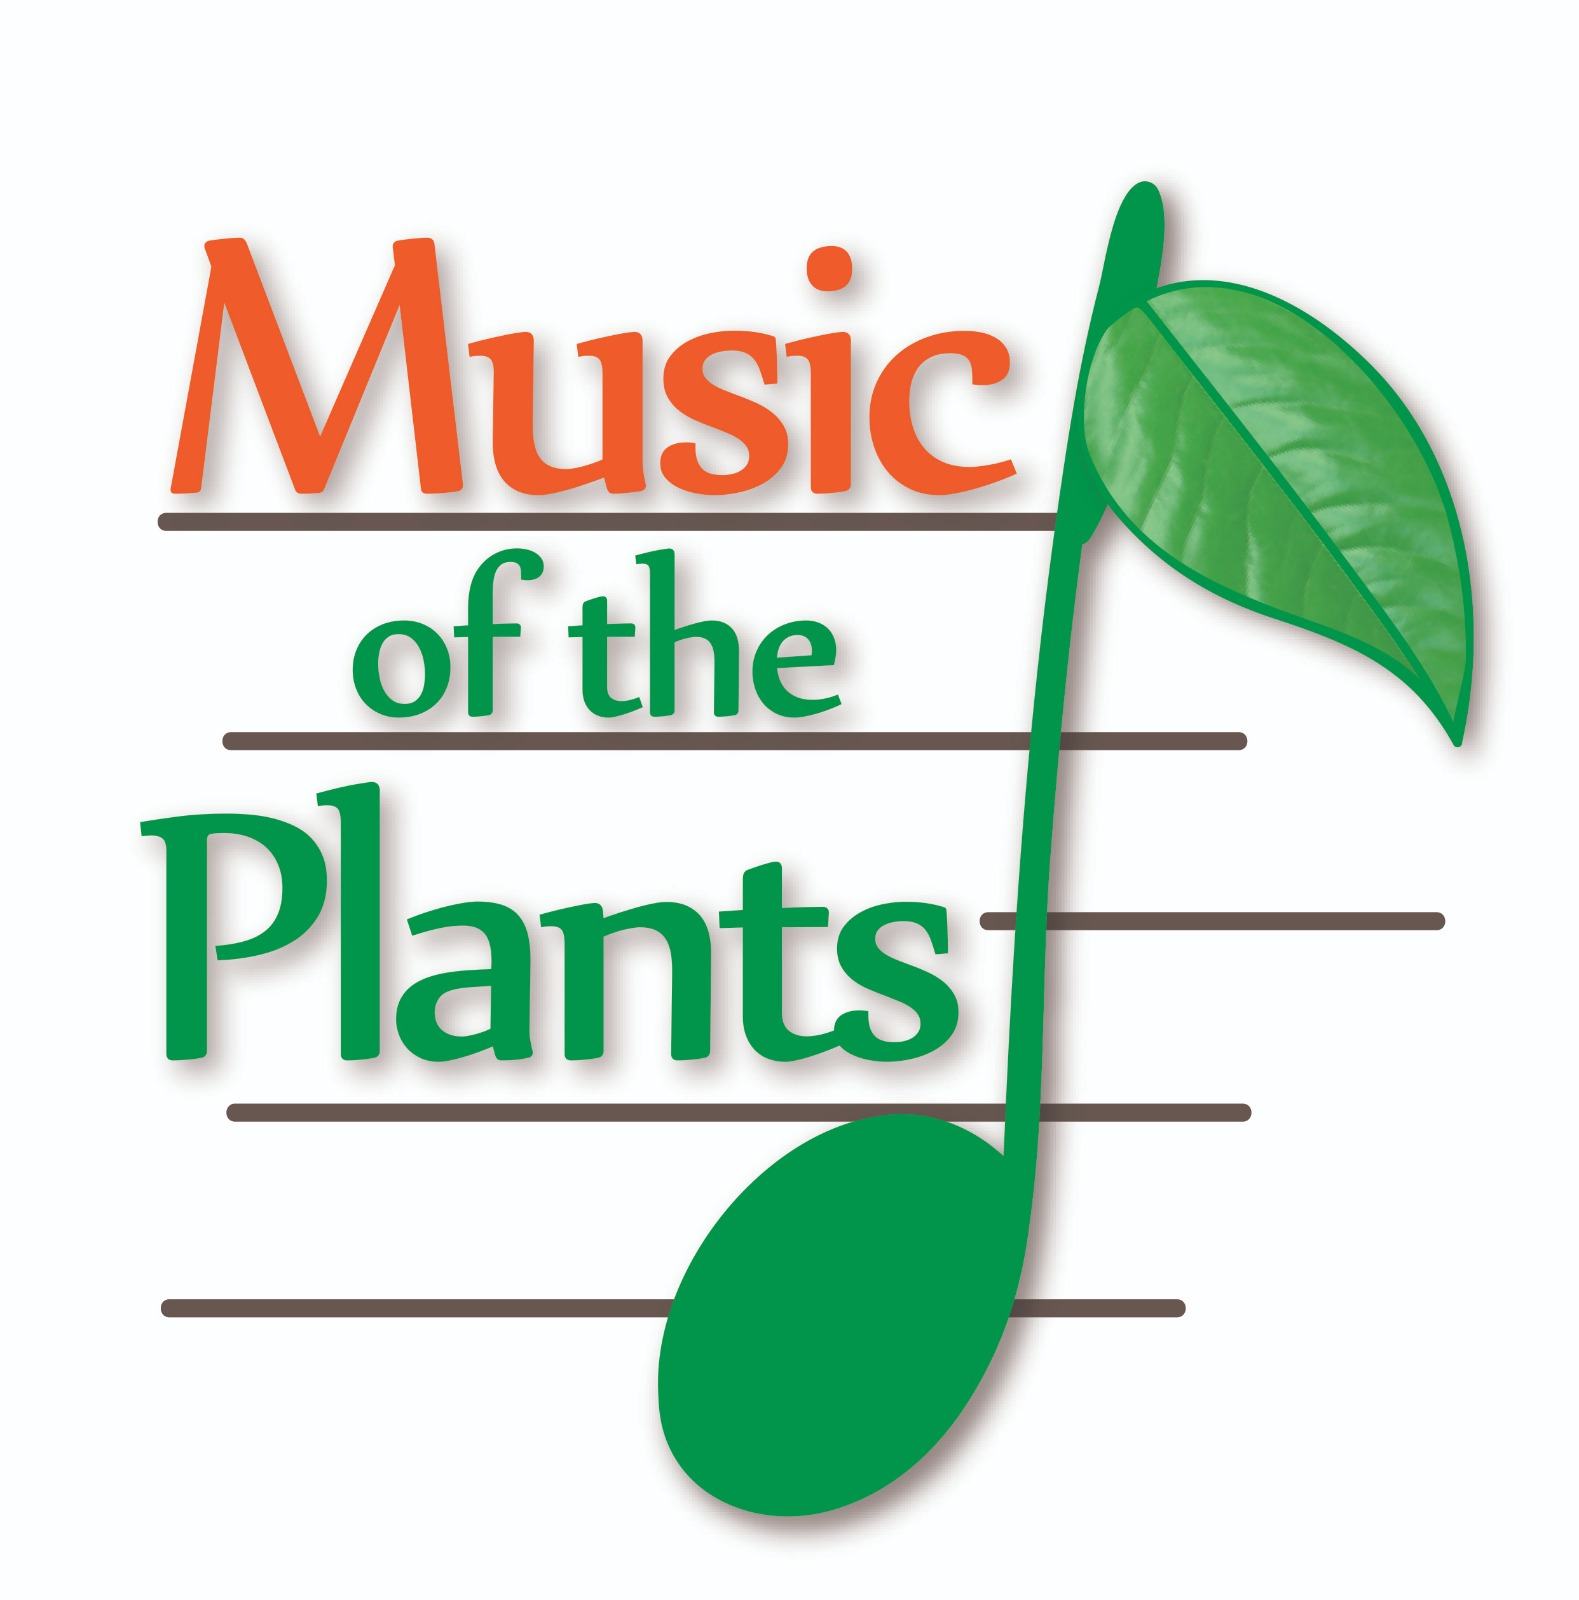 Music of the plants